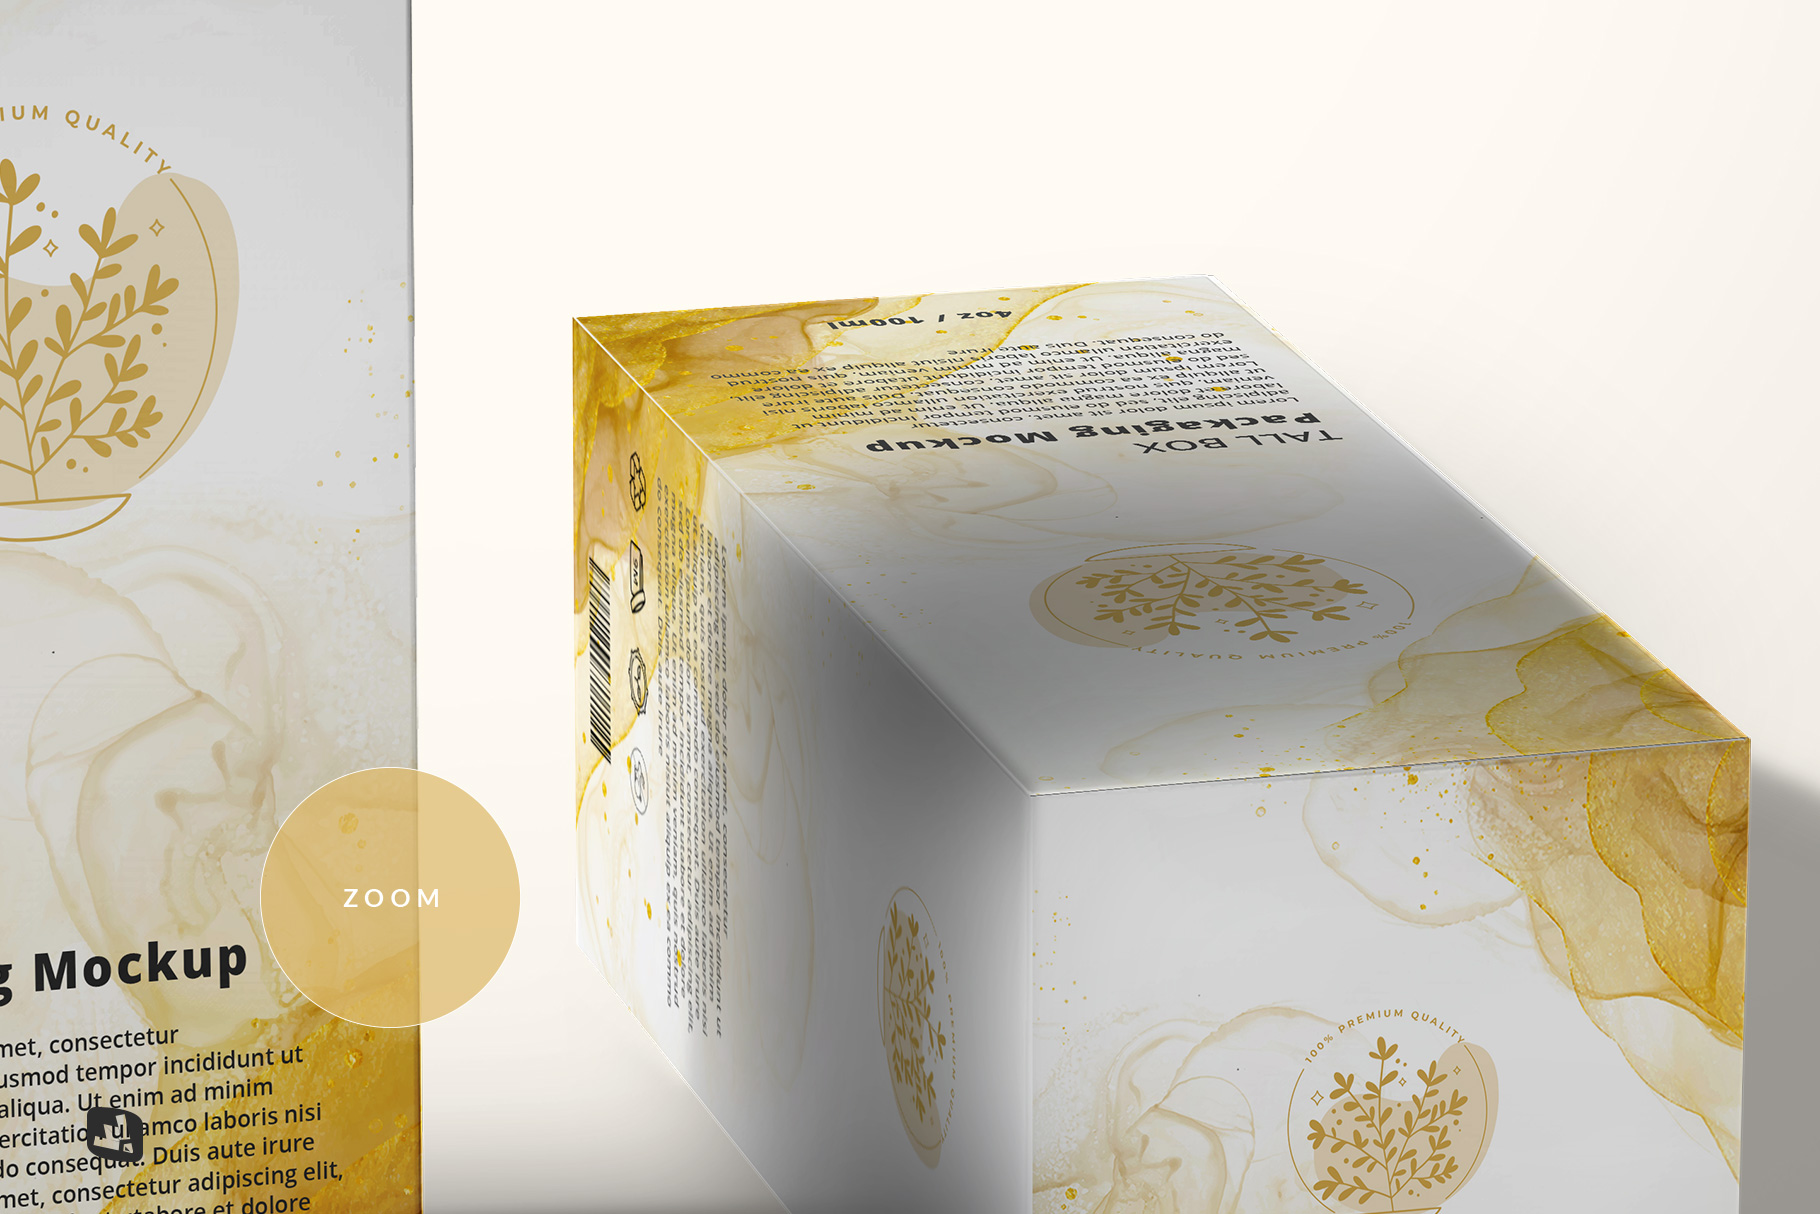 zoomed in image of the set of tall box packaging mockup